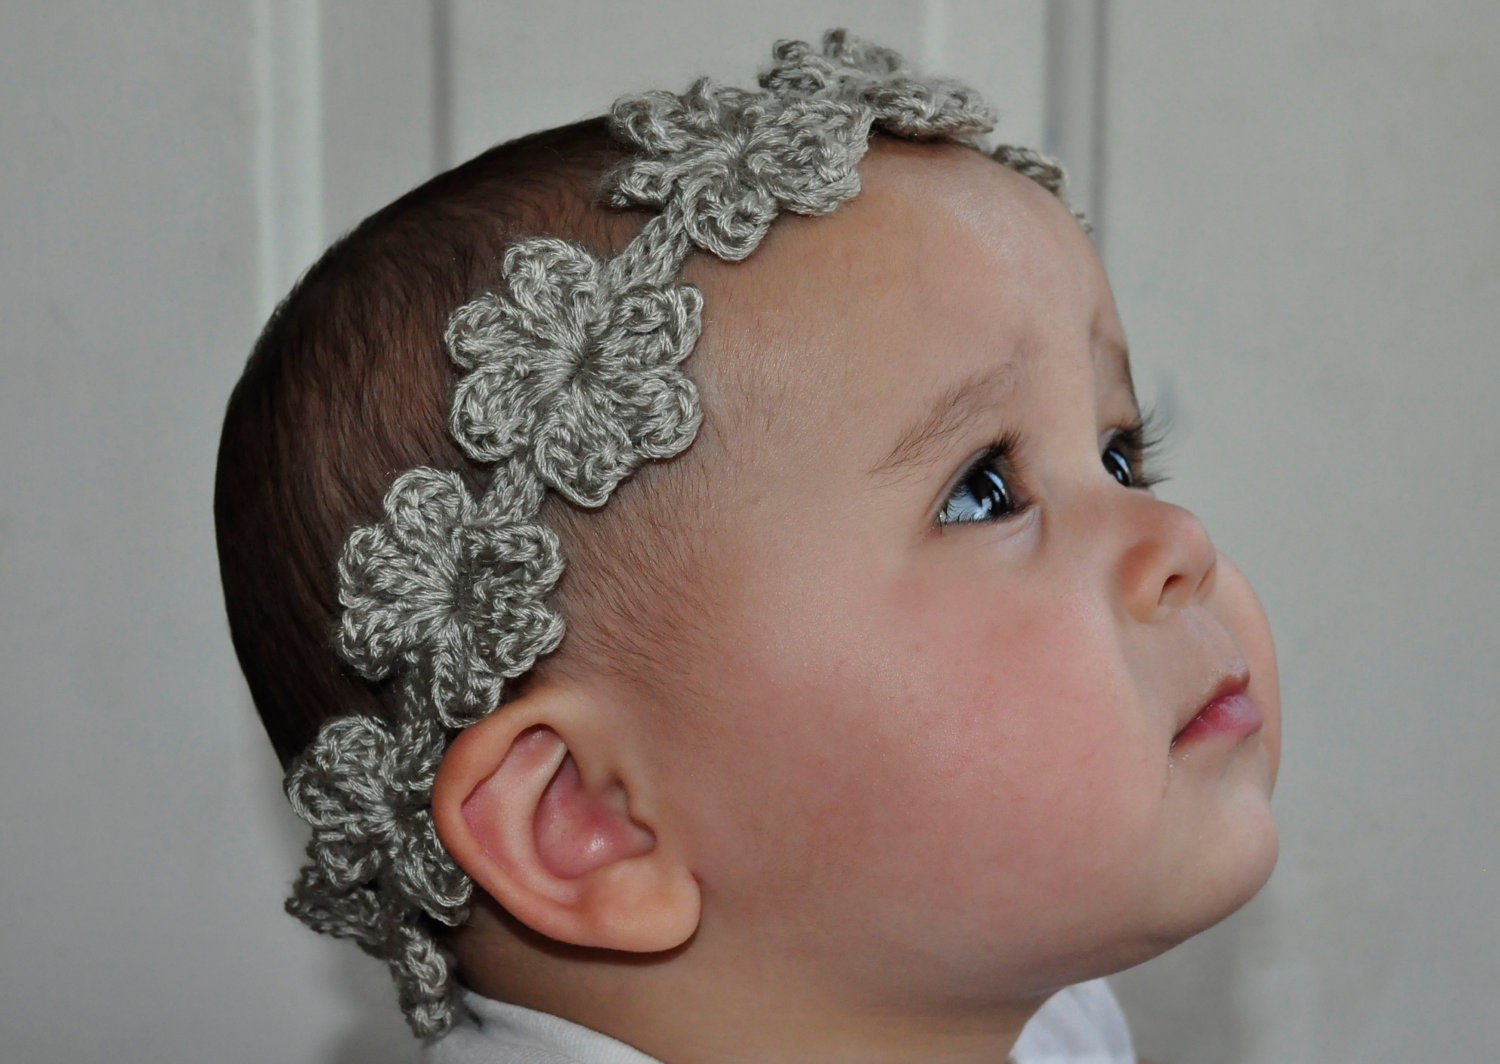 Crochet Headband Pattern Newborn : Crochet Pattern PDF Headband / Bracelet Flower Garland